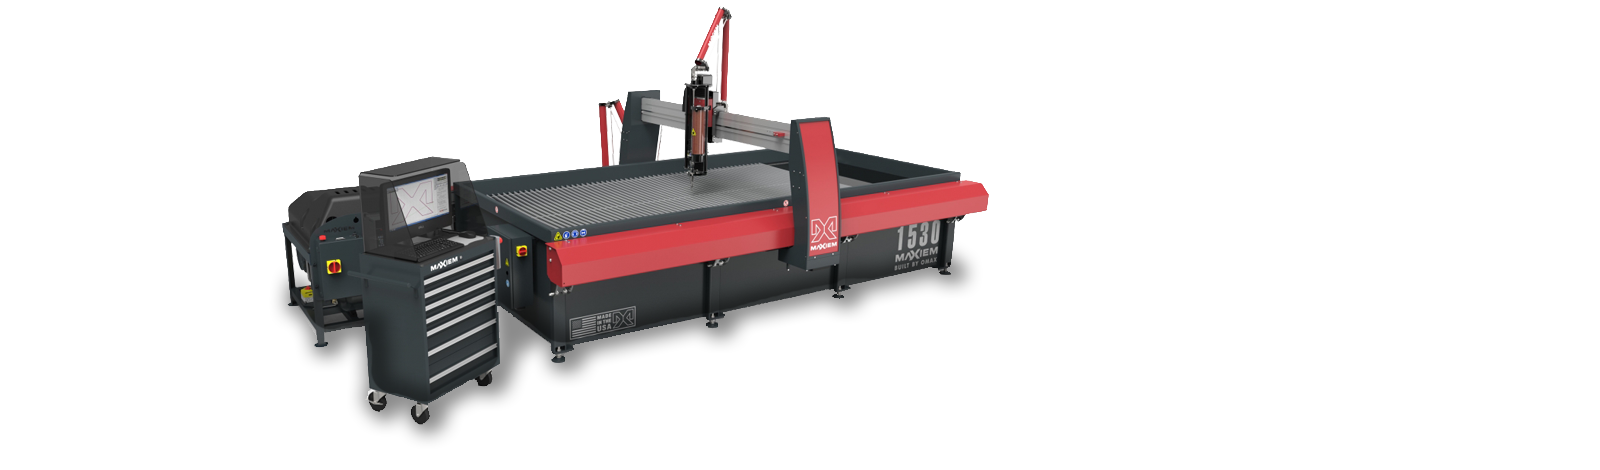 Maxiem 1530 Waterjet Cutting Machine